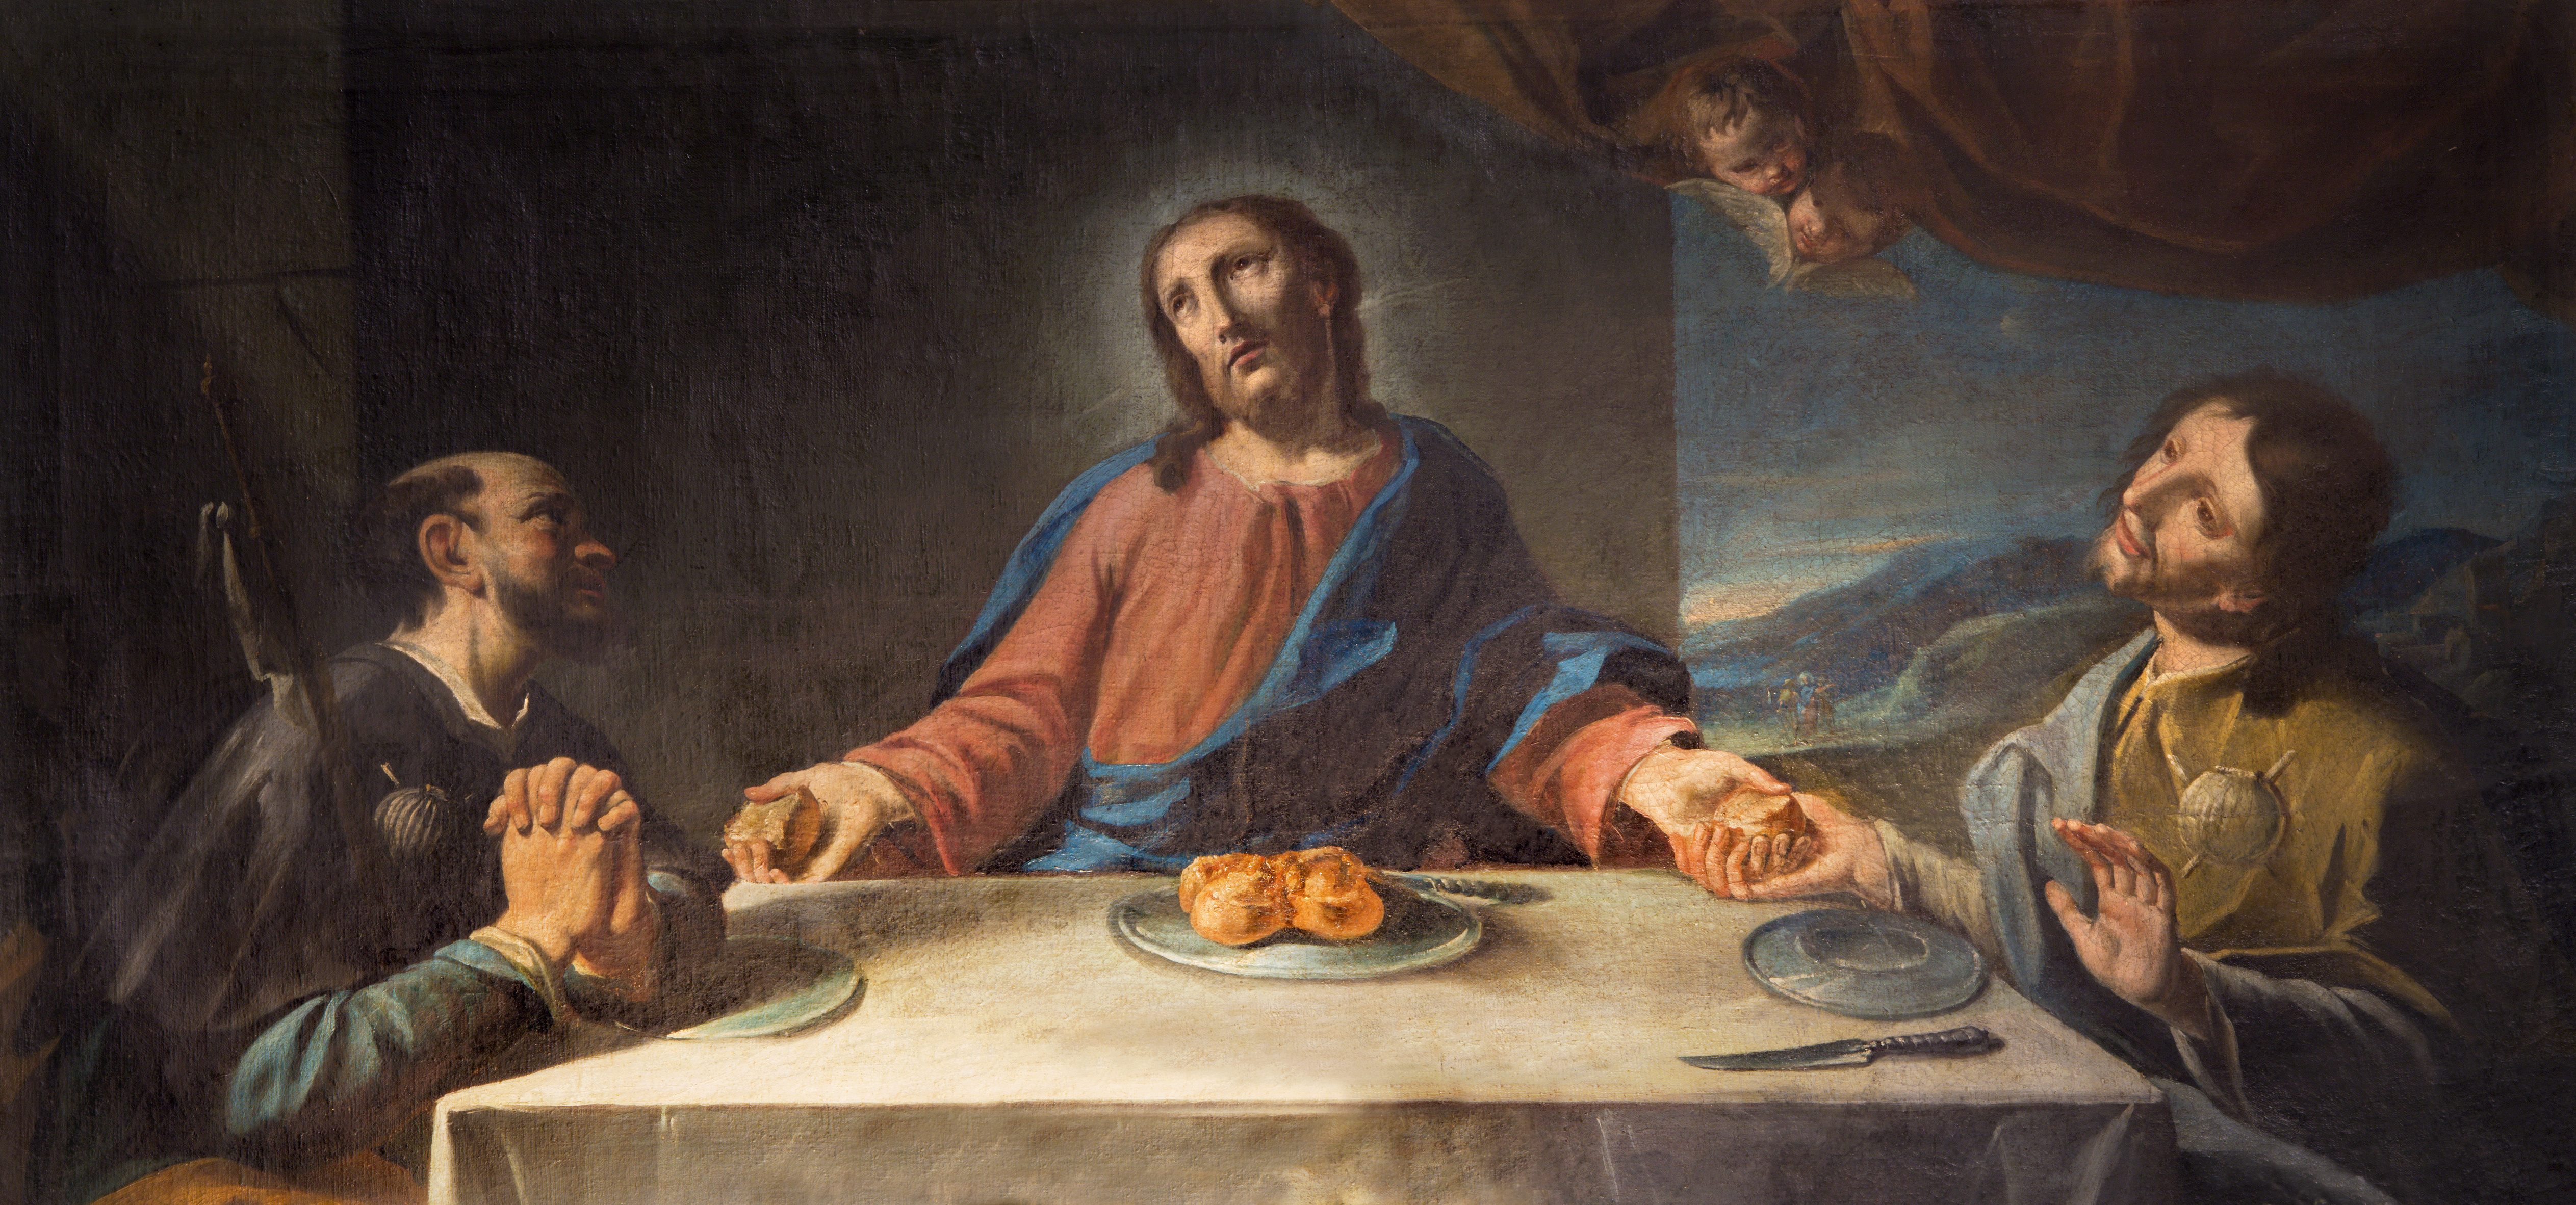 MODENA, ITALY - APRIL 14, 2018: The painting of Supper with two Disciples of Emmaus in church Chiesa di San Pietro by unknown artist